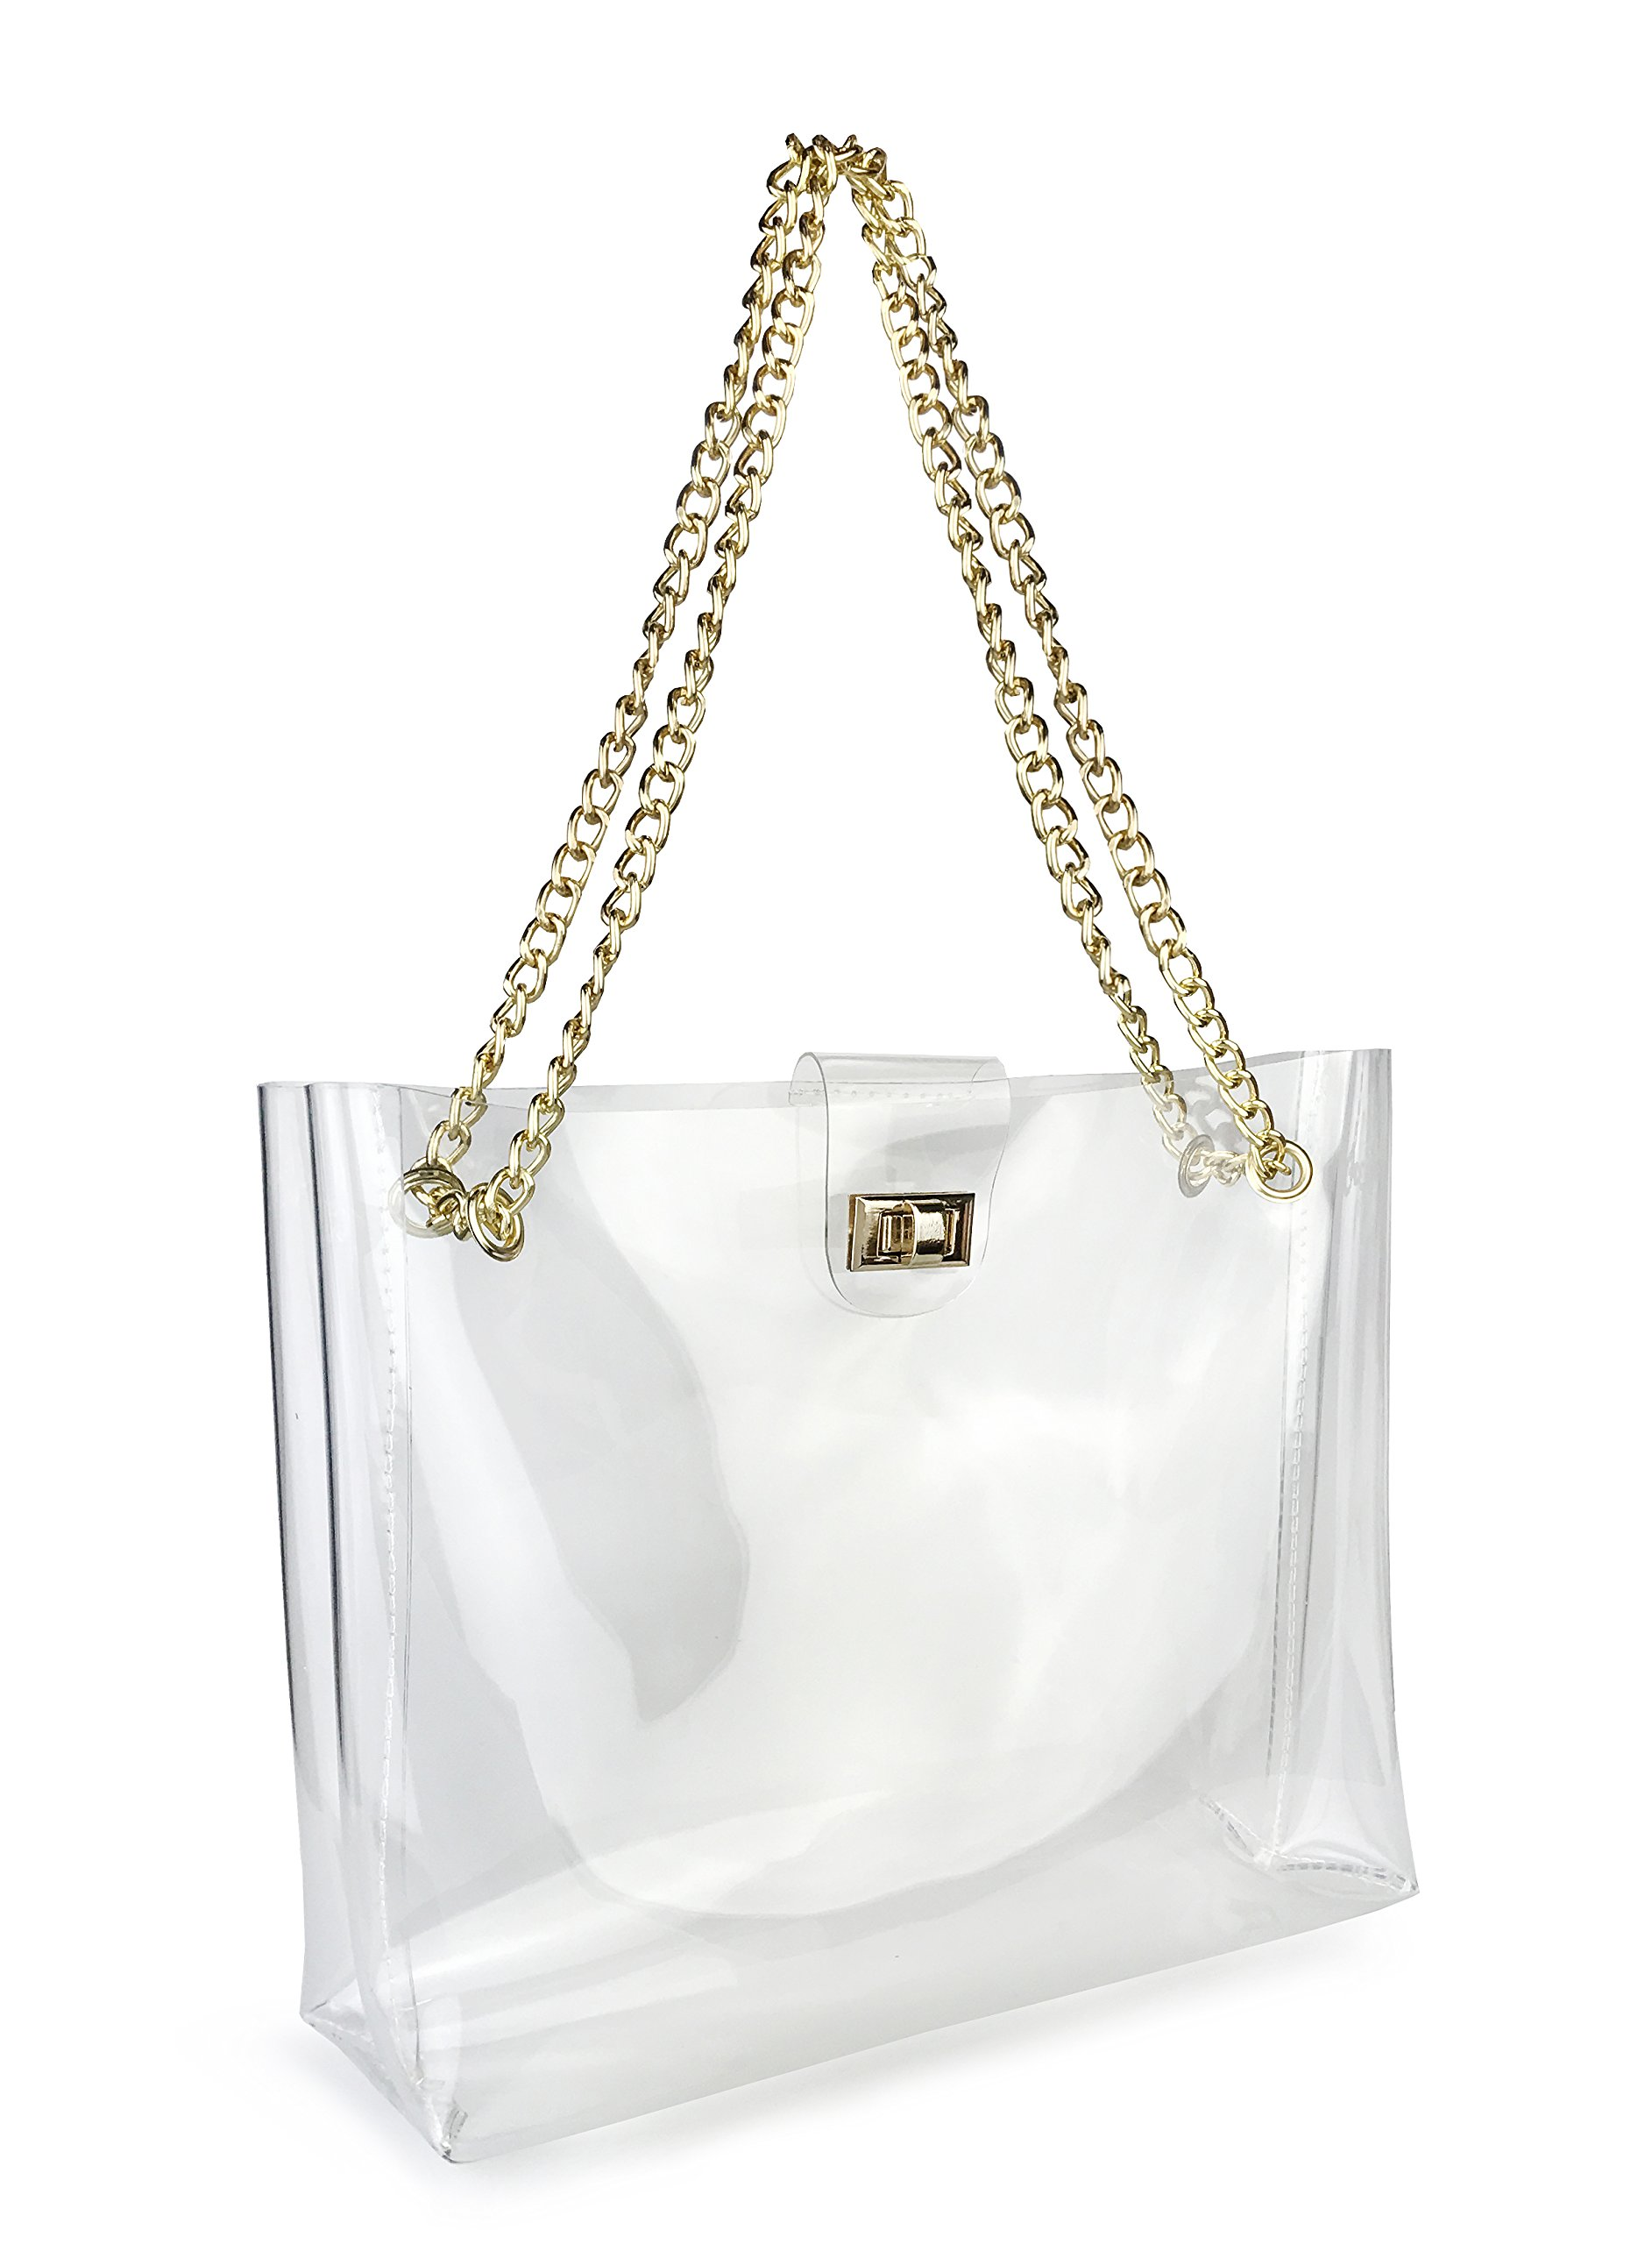 Multifunction Clear Chain Tote with Turn Lock Womens Shoulder Handbag (Clear) by Hoxis (Image #4)